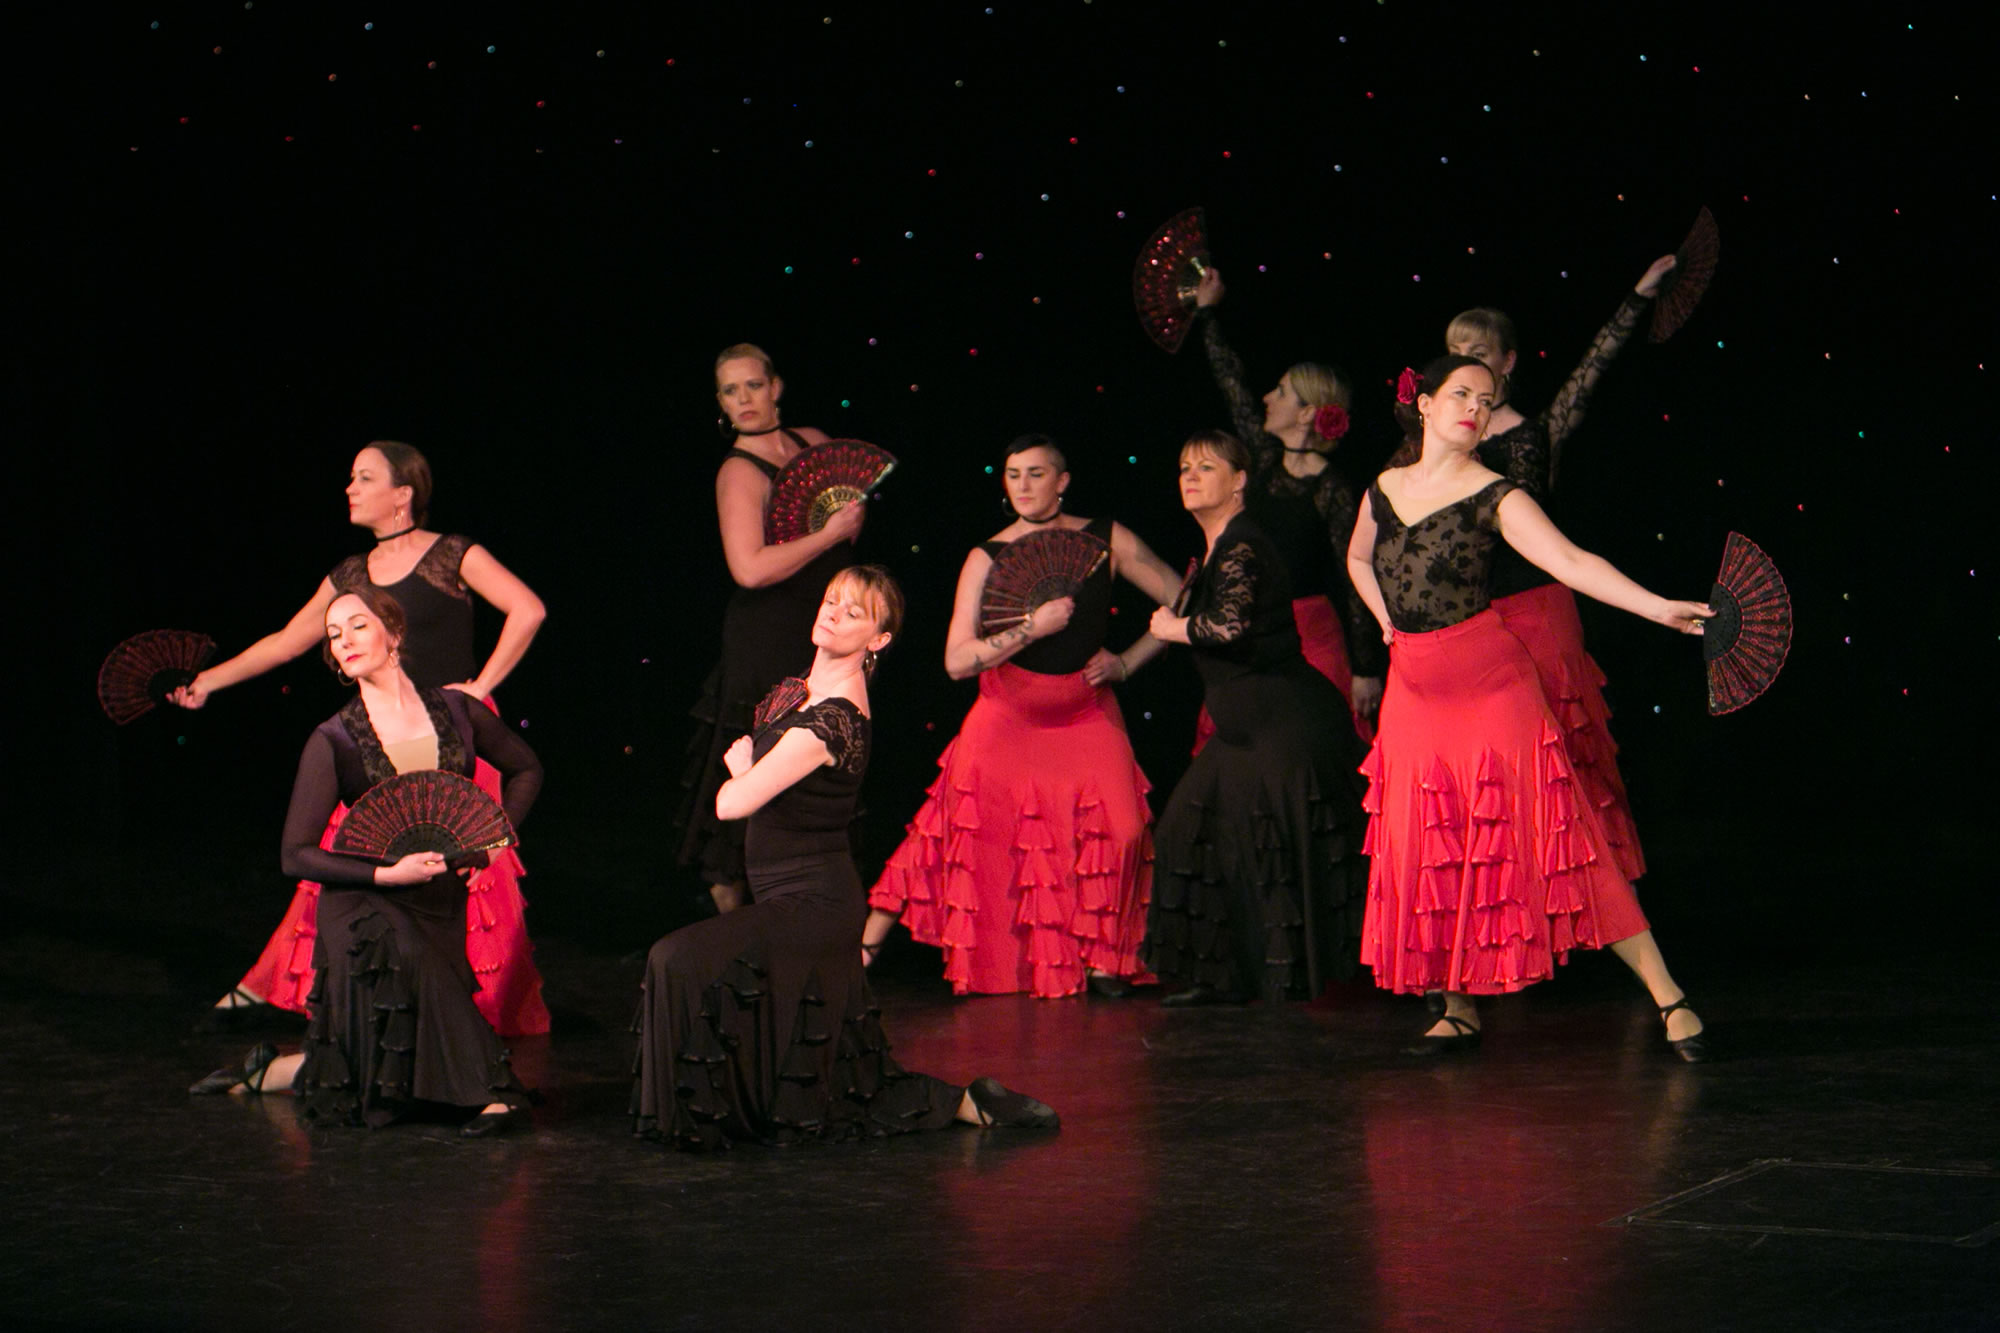 Hitchin_School_of_Dance_Show_2019-SM1_2005.jpg